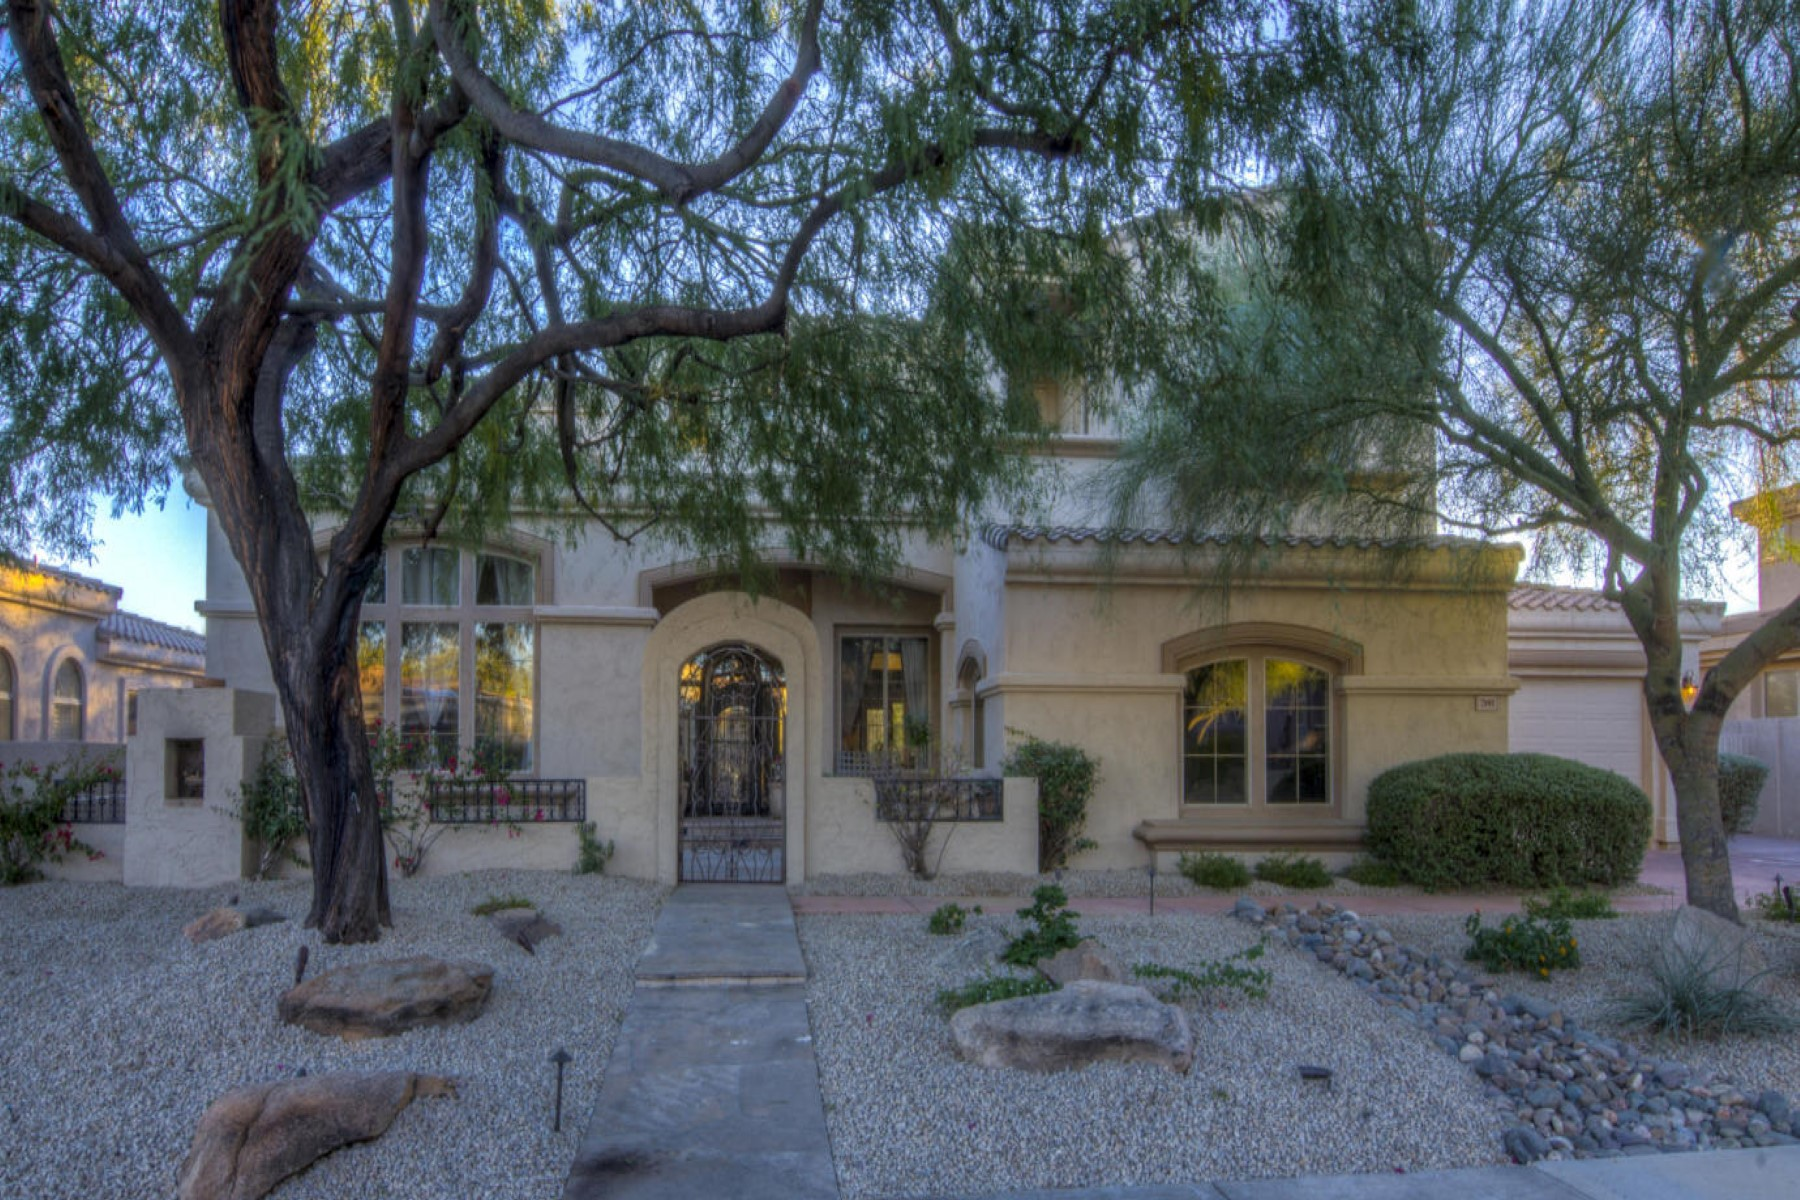 一戸建て のために 売買 アット Fantastic home in great location in gated Sonoran Hills 7949 E Via De Luna Dr Scottsdale, アリゾナ 85255 アメリカ合衆国